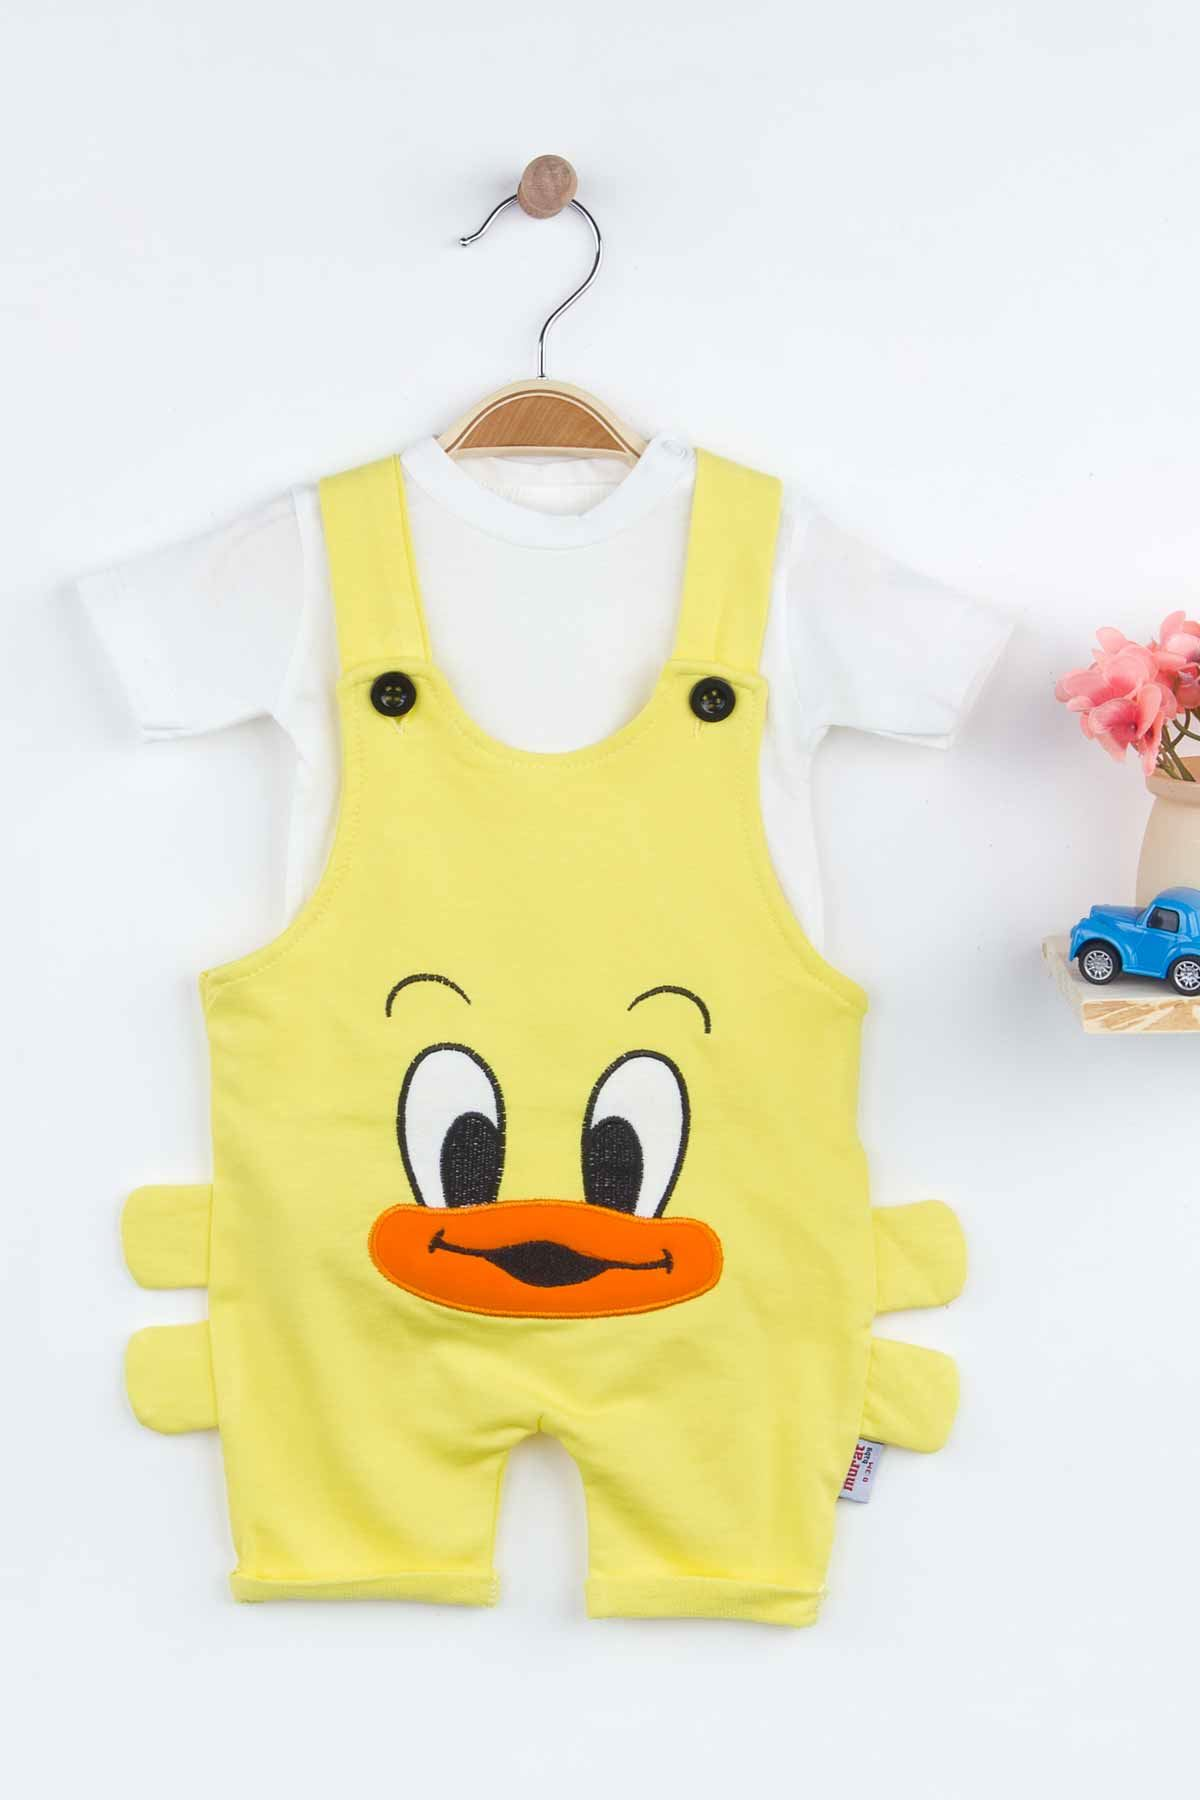 Yellow Baby Boy Rompers Summer Salopet Fashion New Season Style Babies Clothes Outfit Cotton Comfortable Underwear for Boys Baby